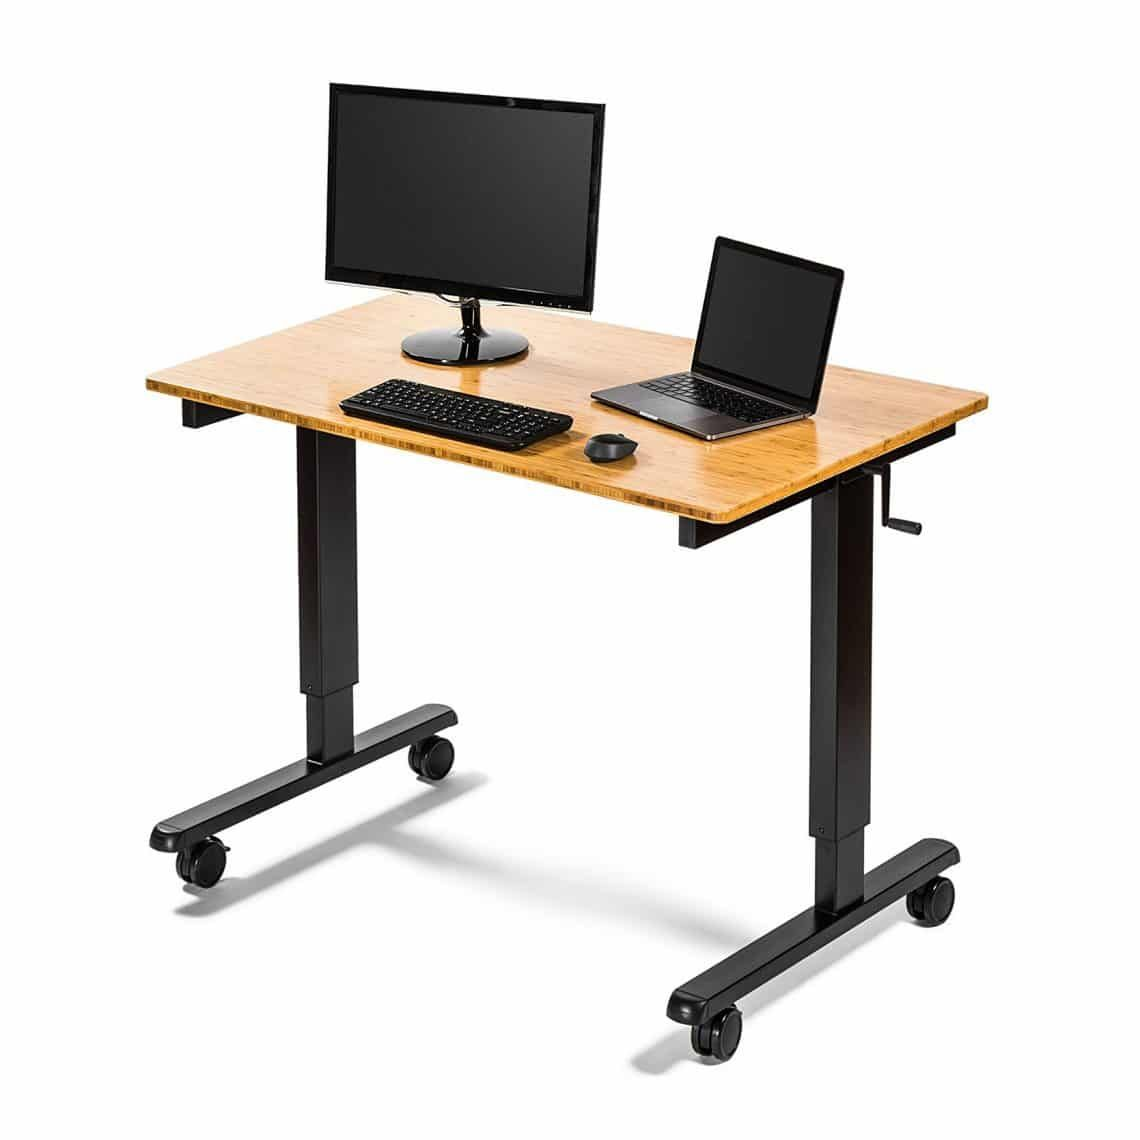 Crank adjustable desk store u stand up height standing desk top